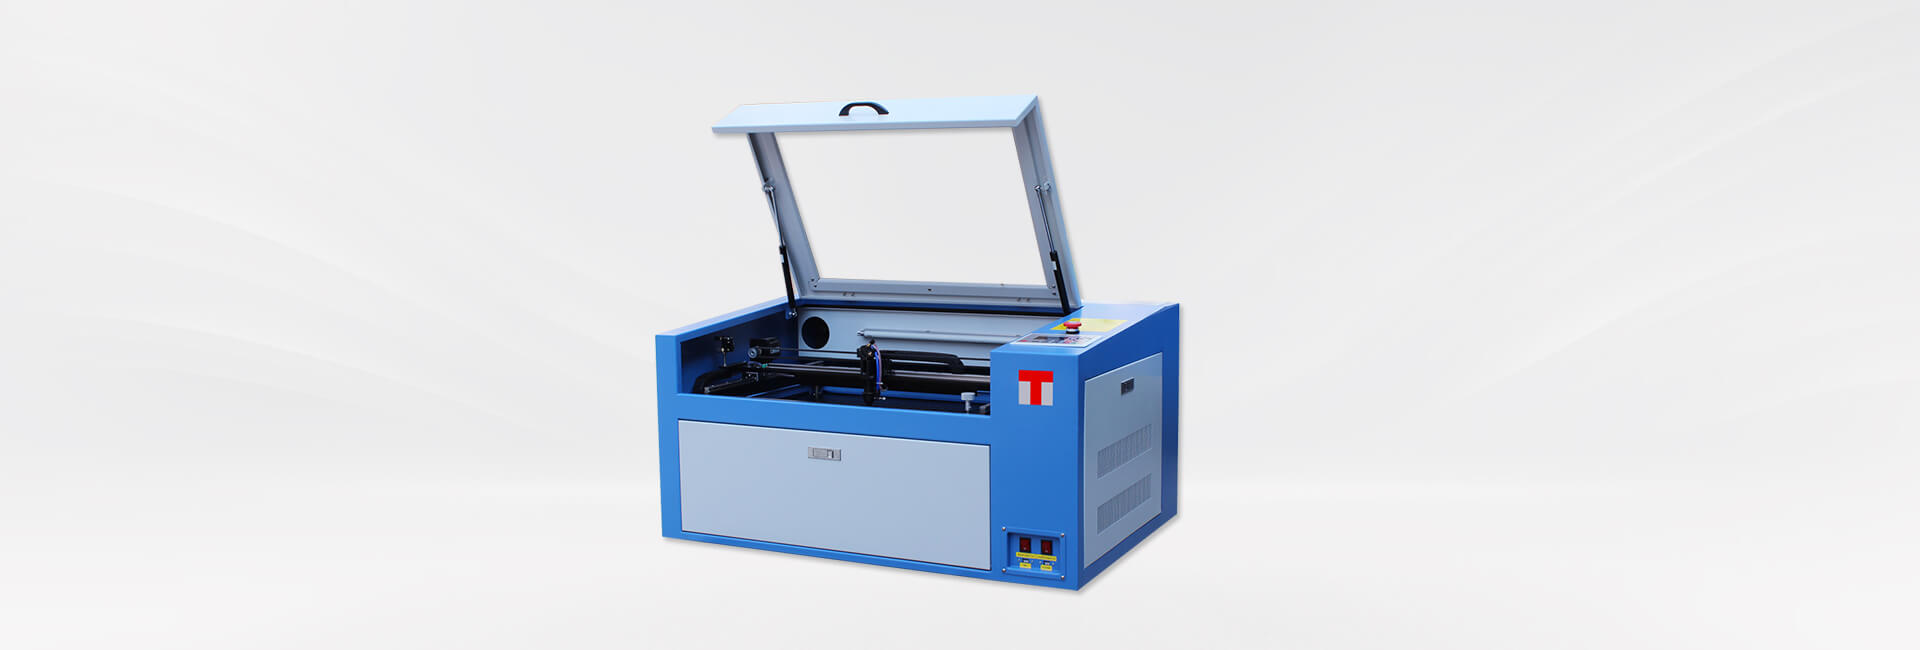 small laser engraving machine TR6040 (1)